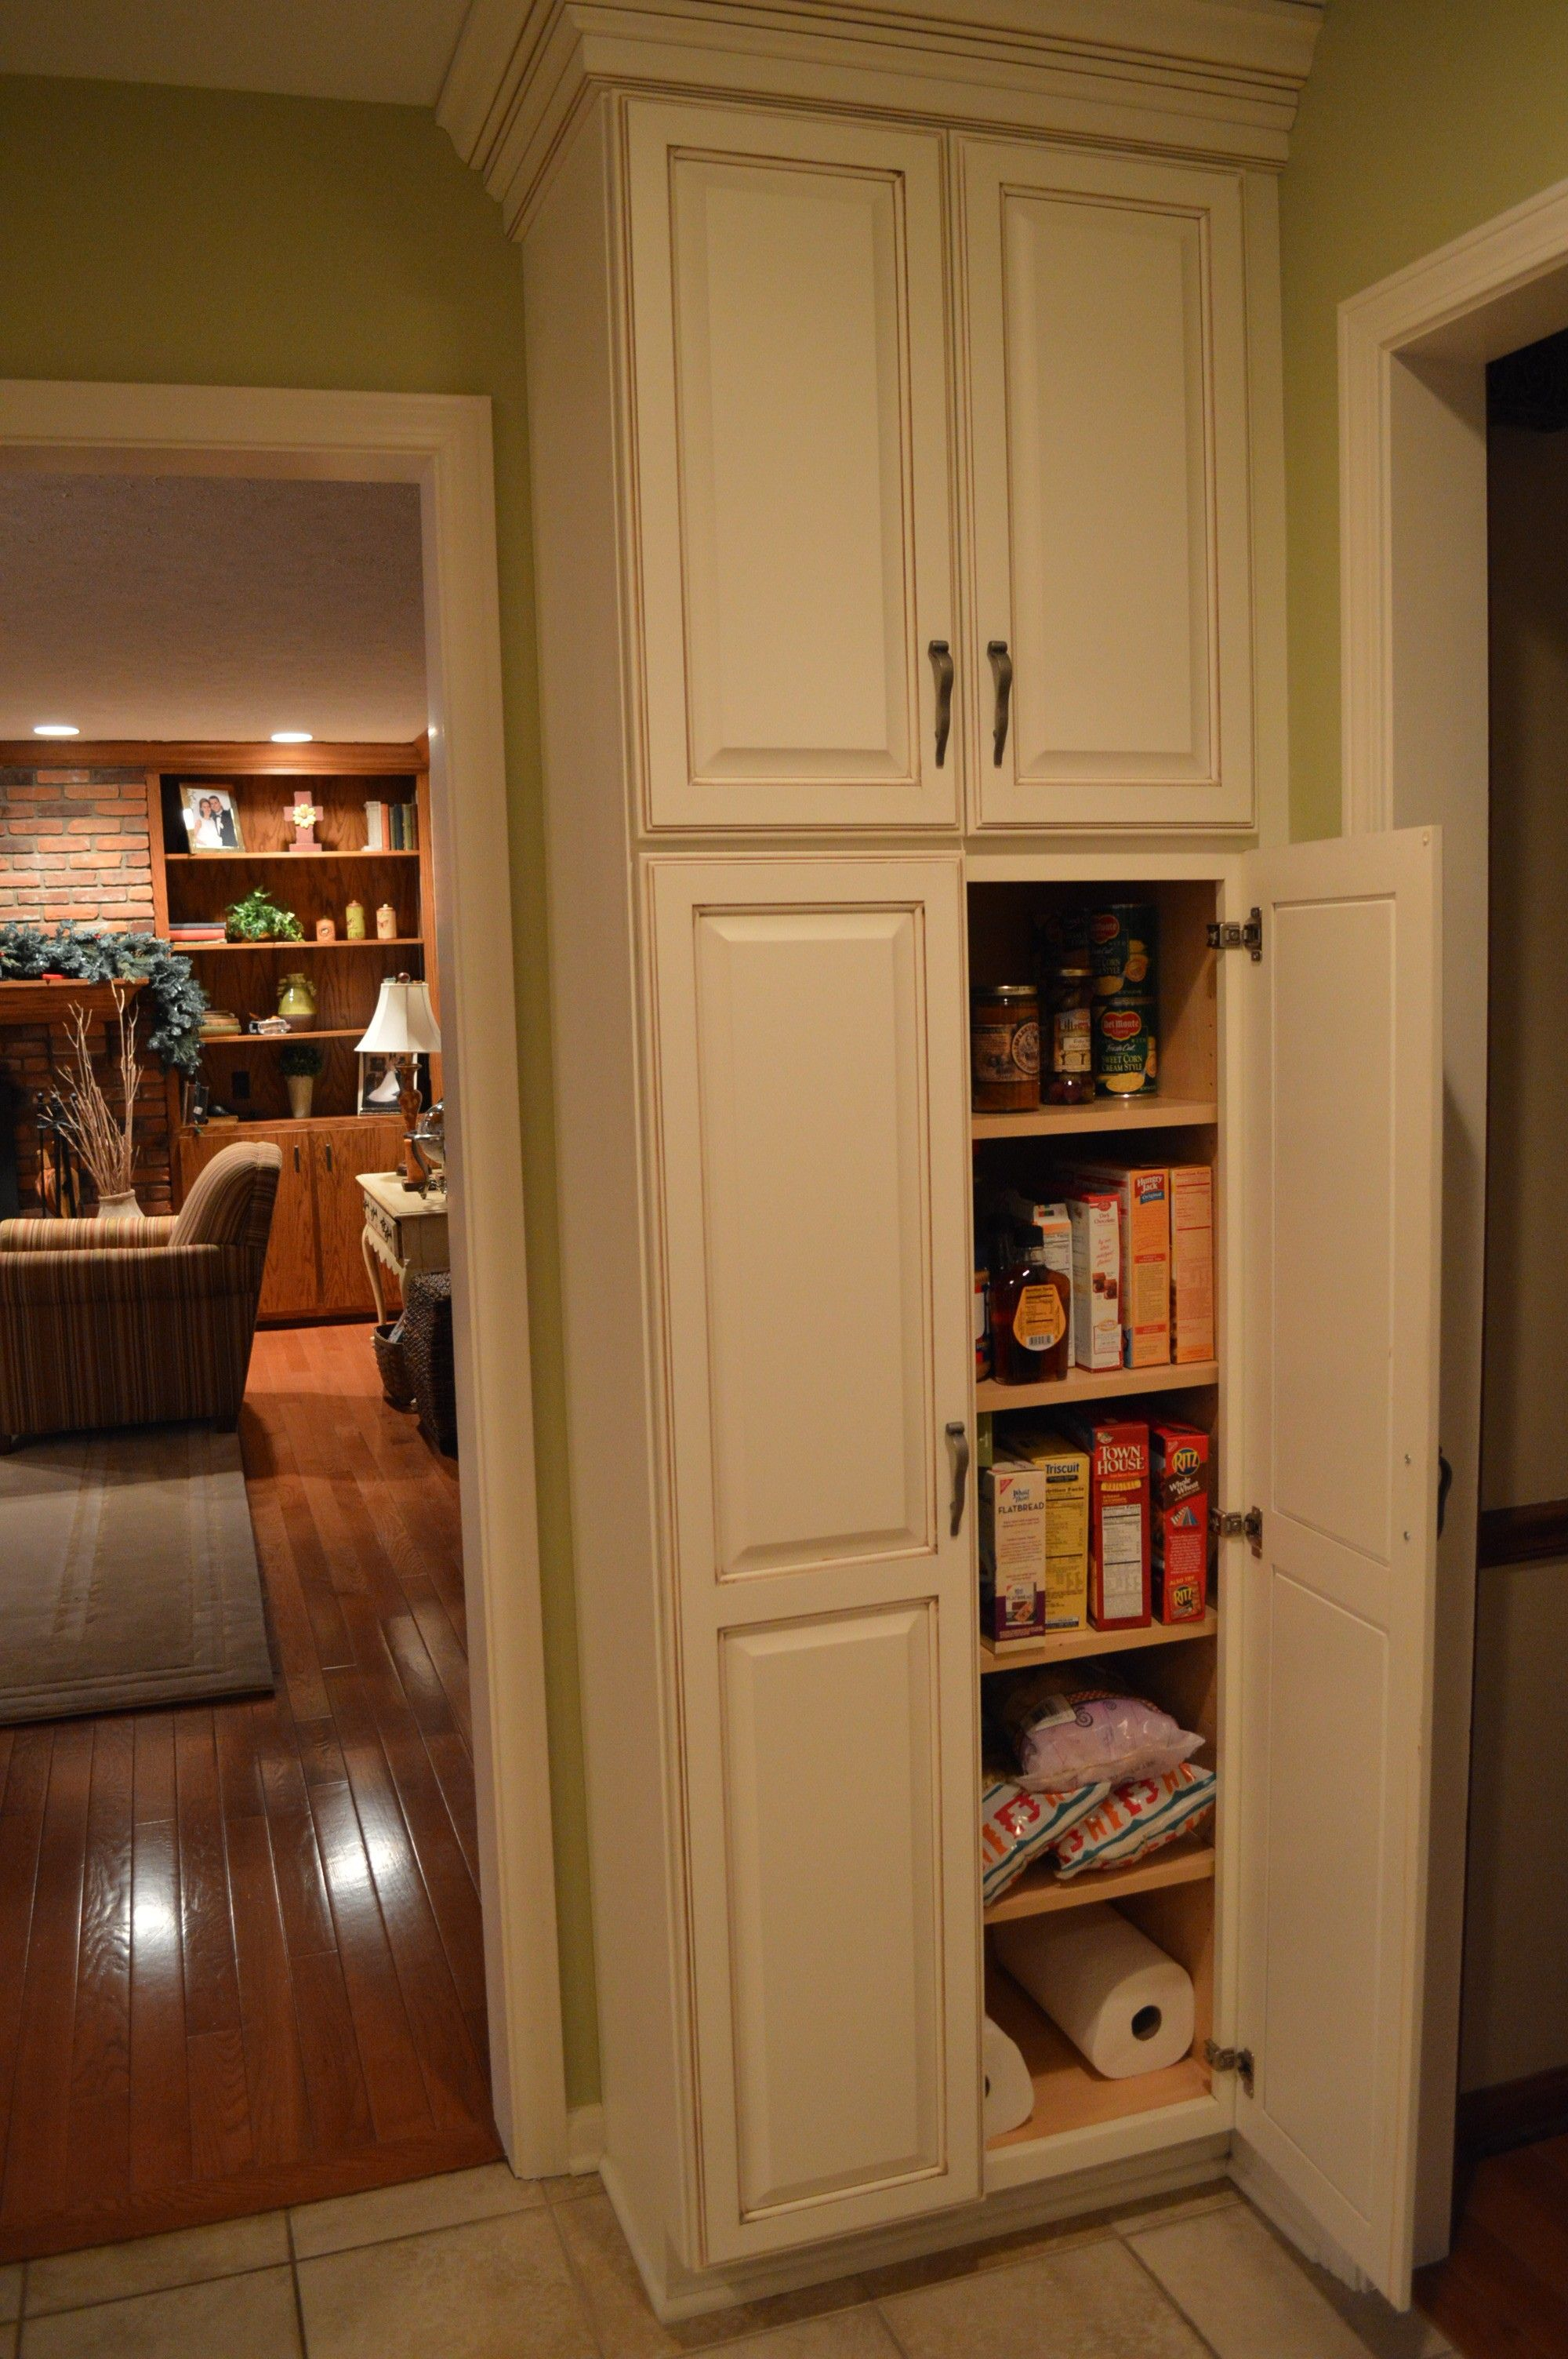 narrow cabinet for kitchen White Wooden Tall Narrow Pantry Cabinet With 4 Maple Wood Shelves And Wooden Door Panel Astounding Free Standing Corner Pantry Cabinet Design Furniture